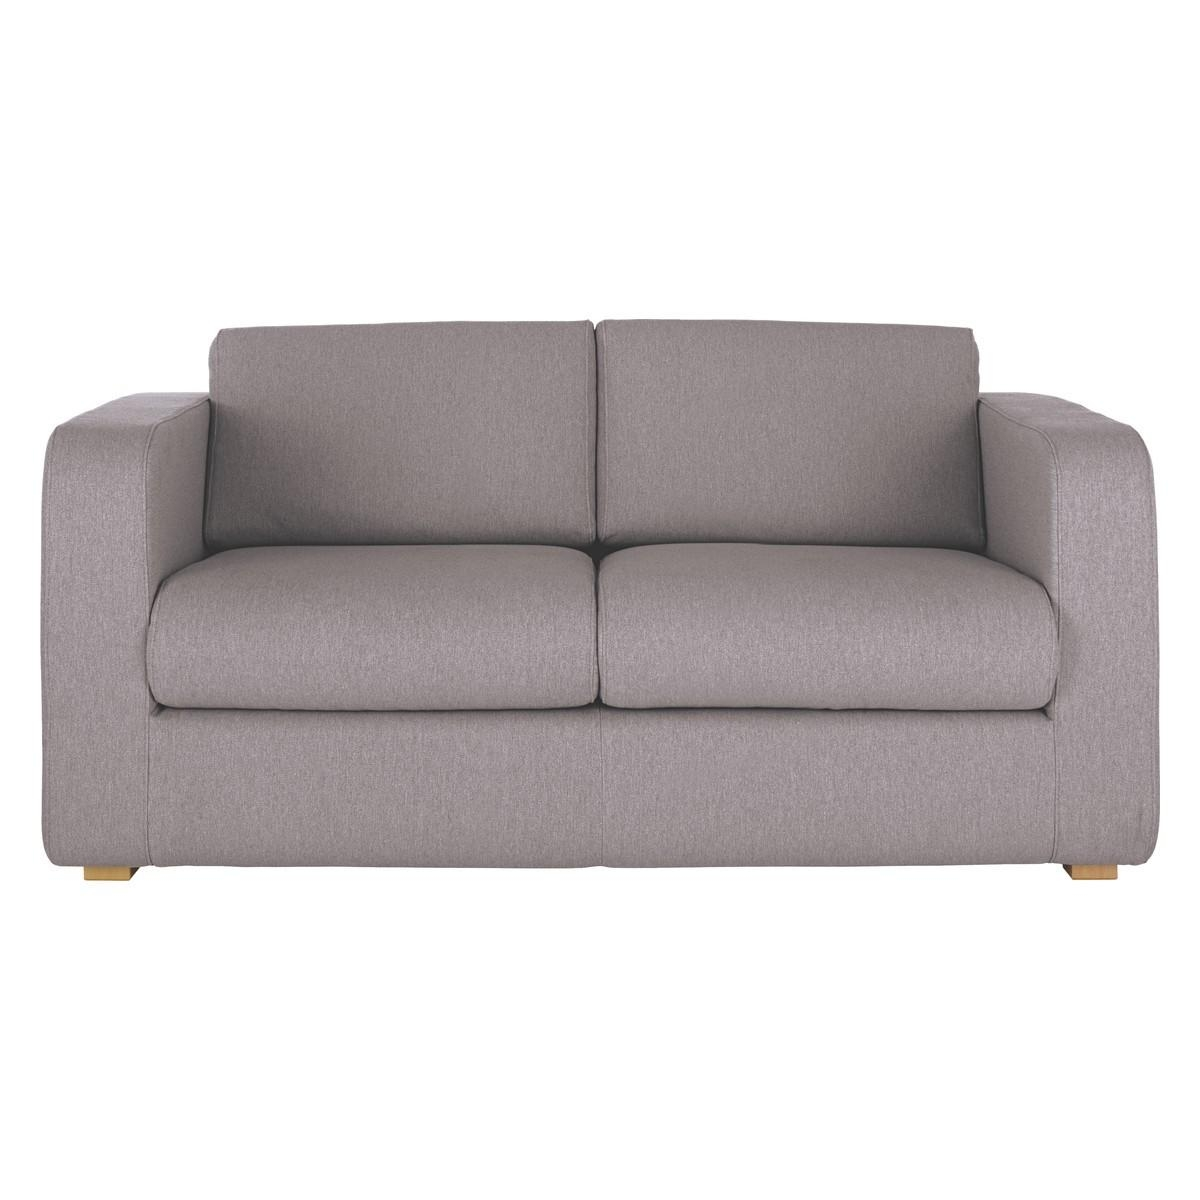 Sofas Center : Jensen Seater Small Sofa Fabric Upholstered Dark With Regard To Small 2 Seater Sofas (View 18 of 20)